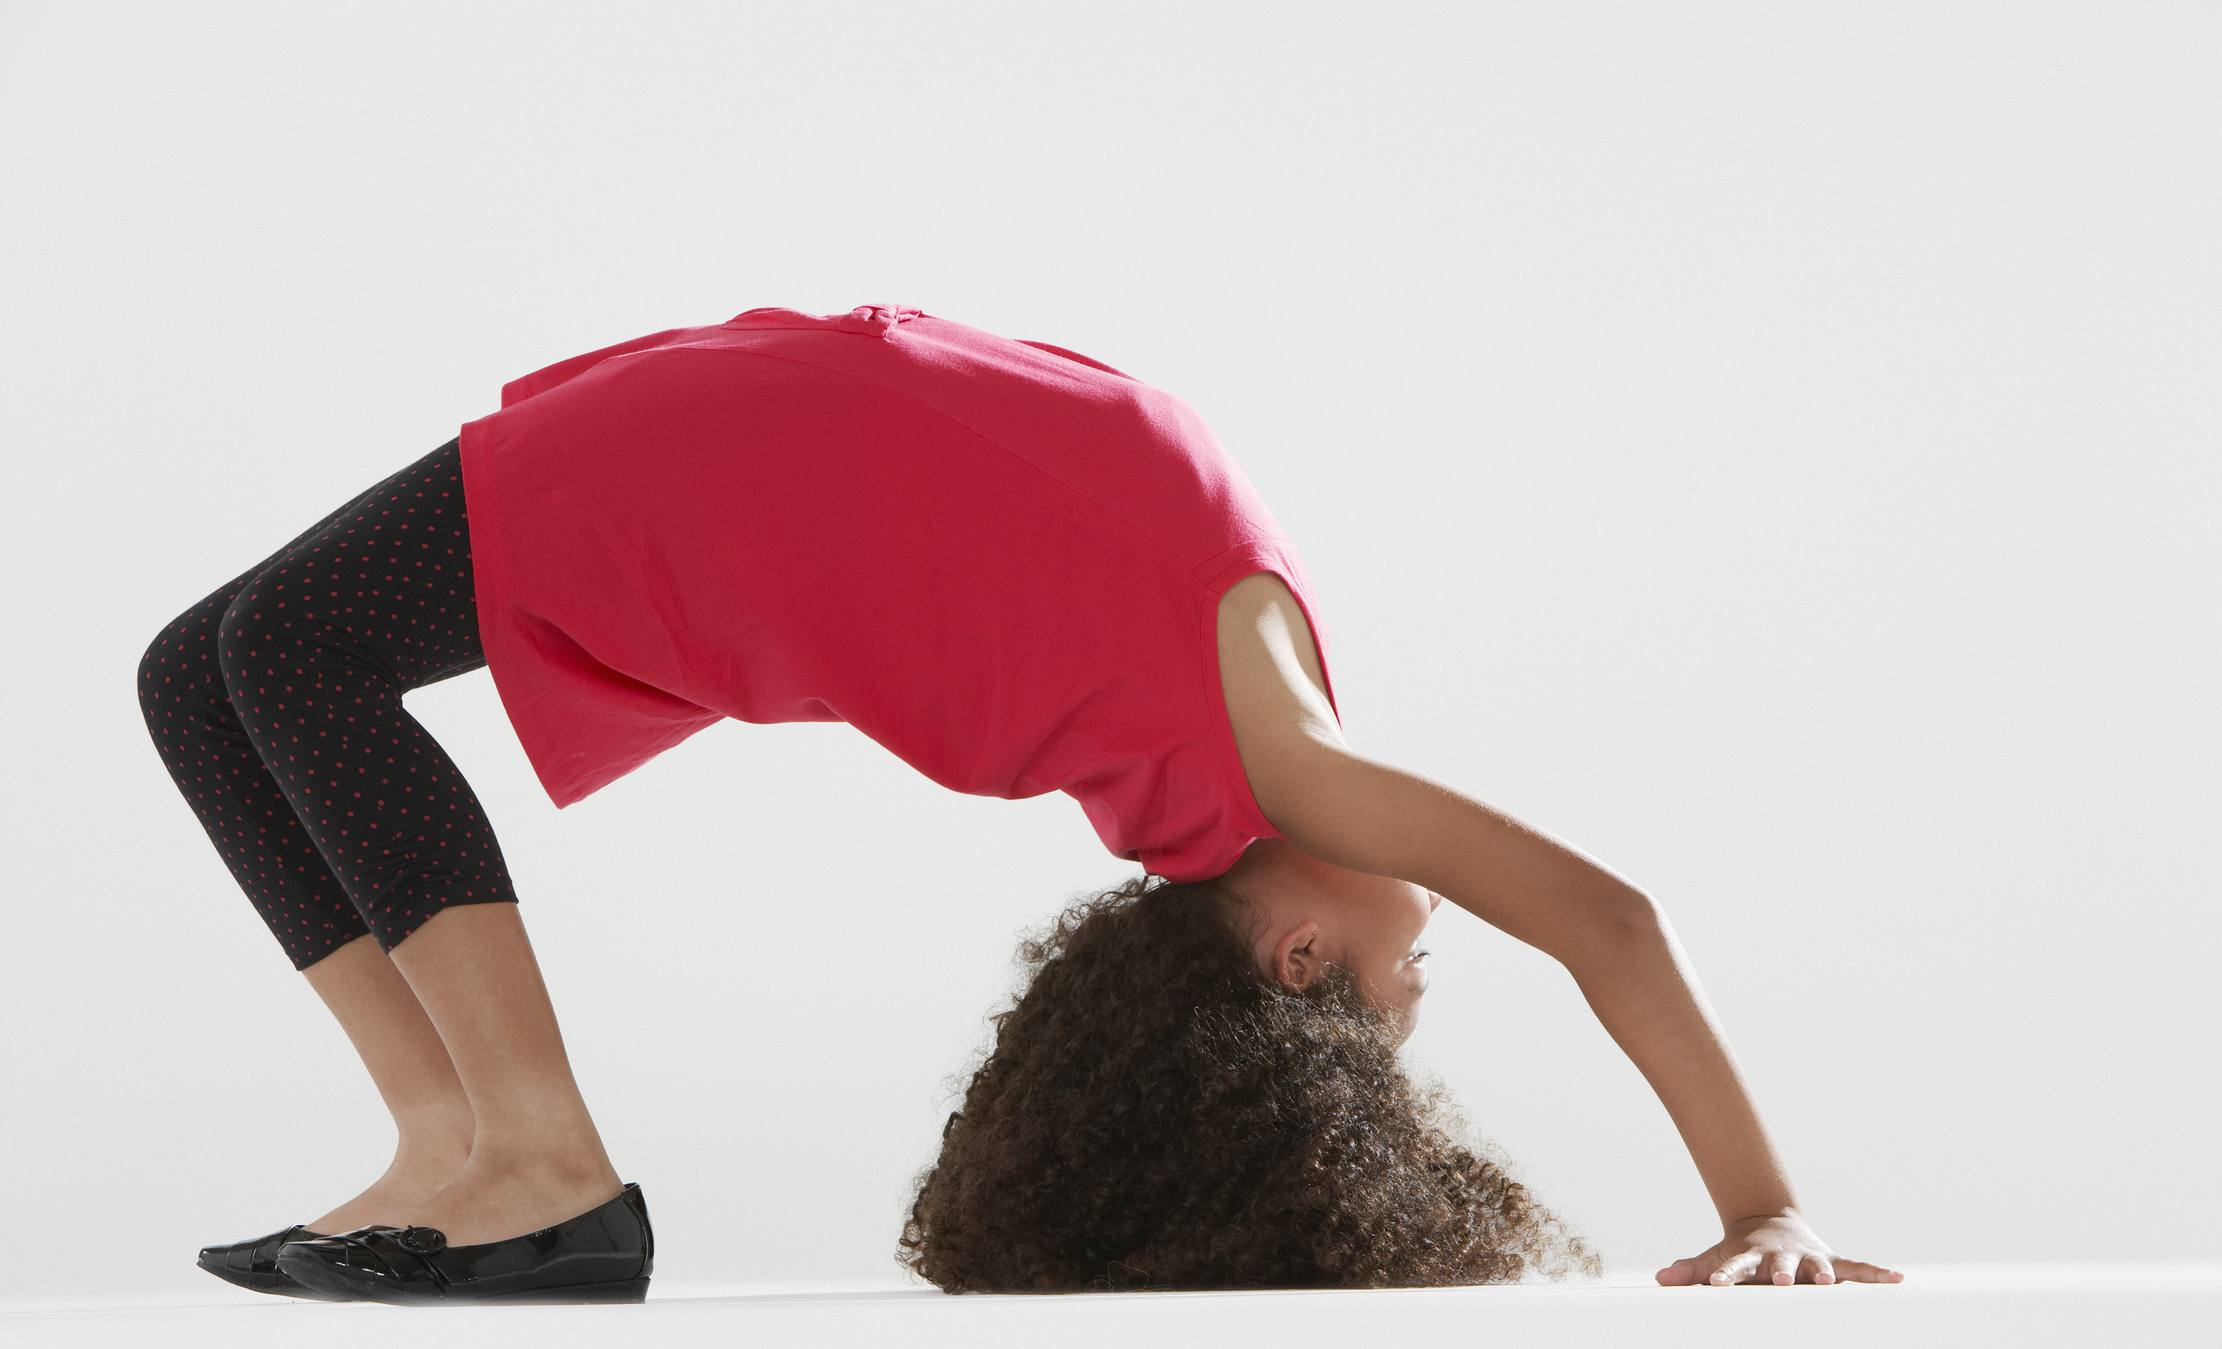 Young girl indoors doing back walkover